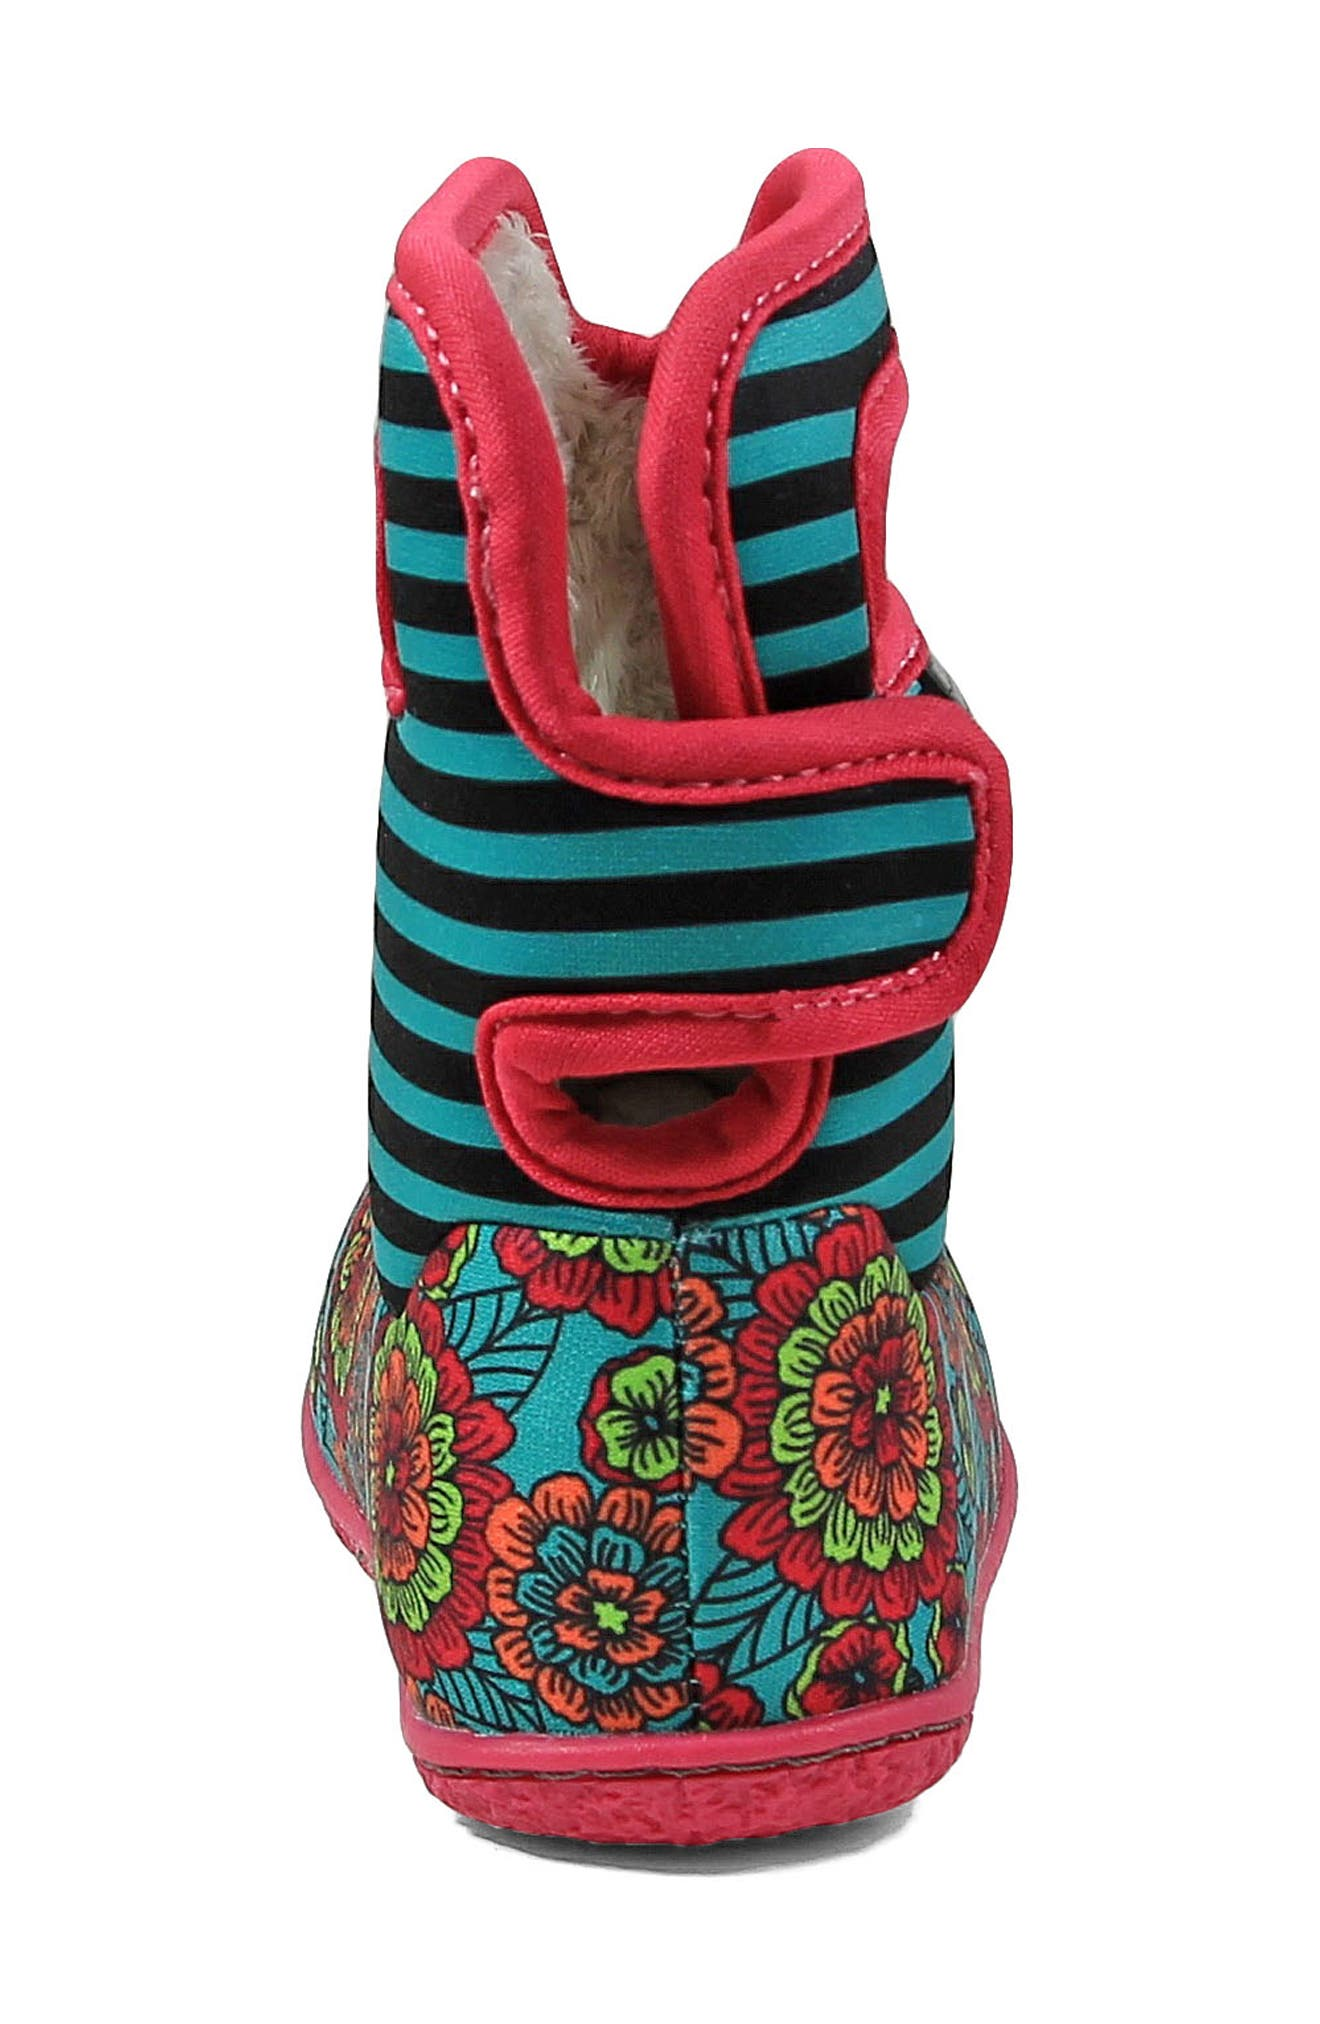 BOGS,                             Baby Bogs Classic Pansies Washable Insulated Waterproof Boot,                             Alternate thumbnail 7, color,                             346